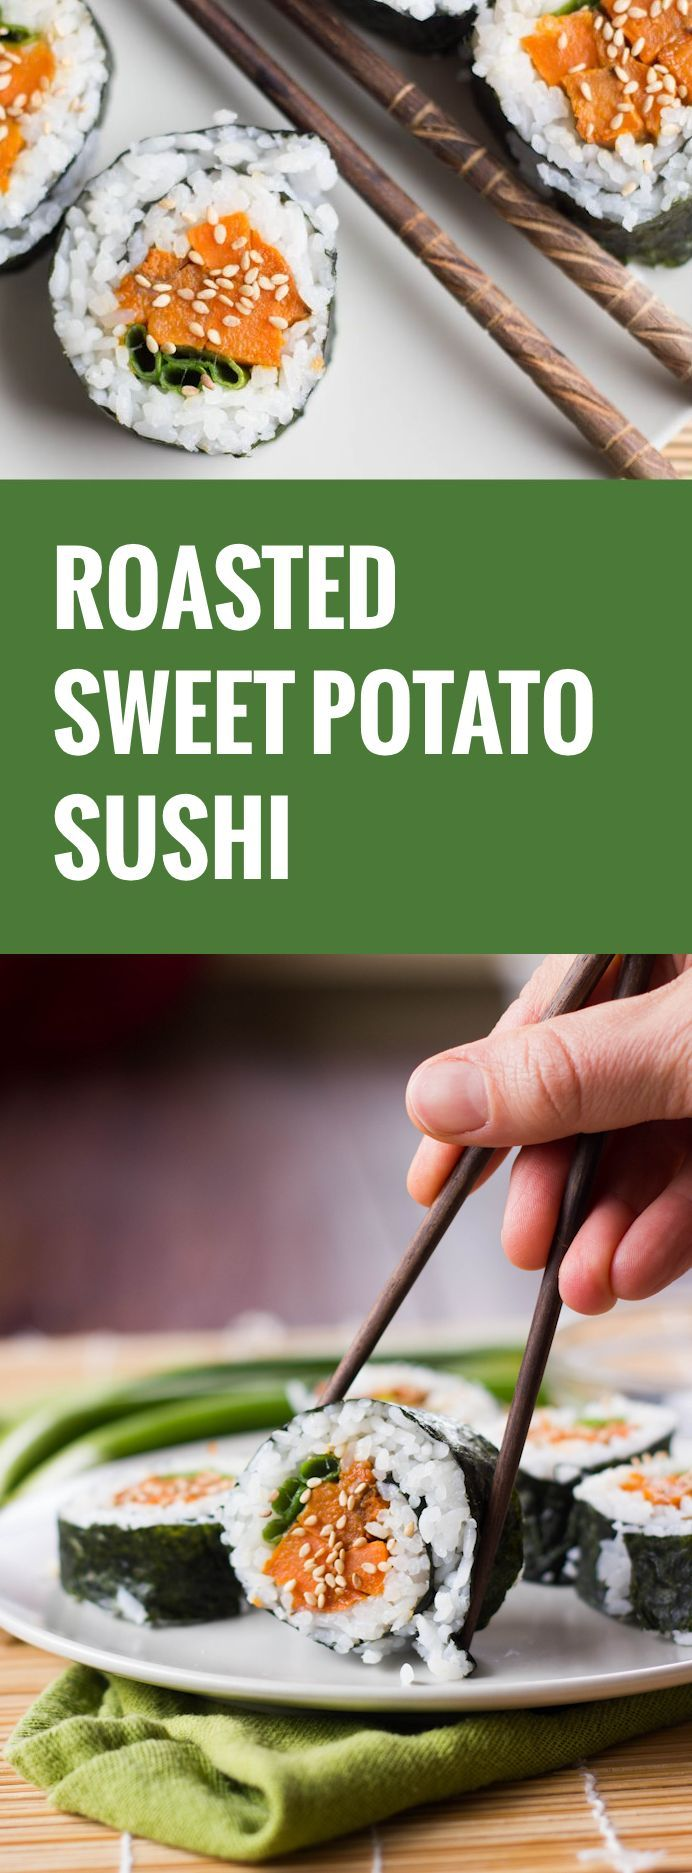 Roasted Sweet Potato Sushi (Vegan Sweets Rolls)